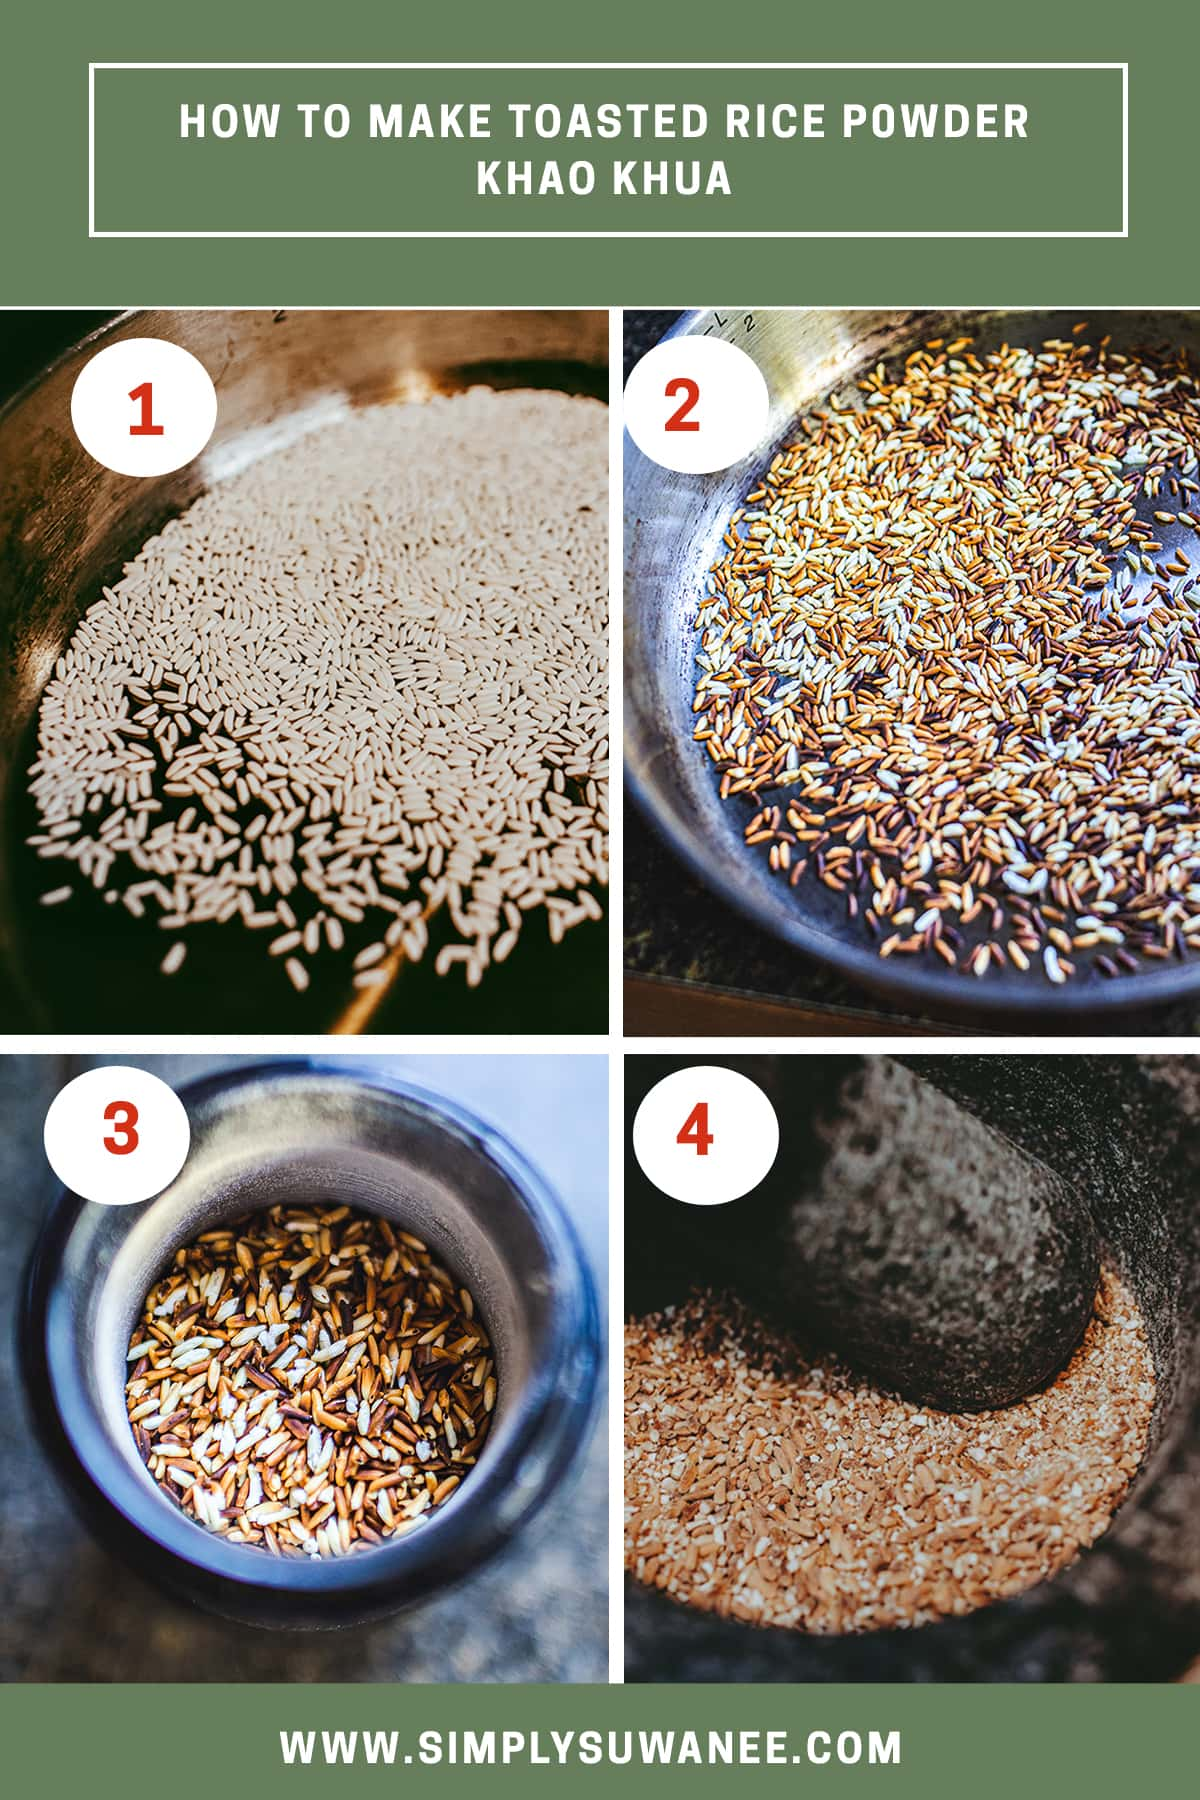 process shots of step 1-4 of how to make toasted rice powder